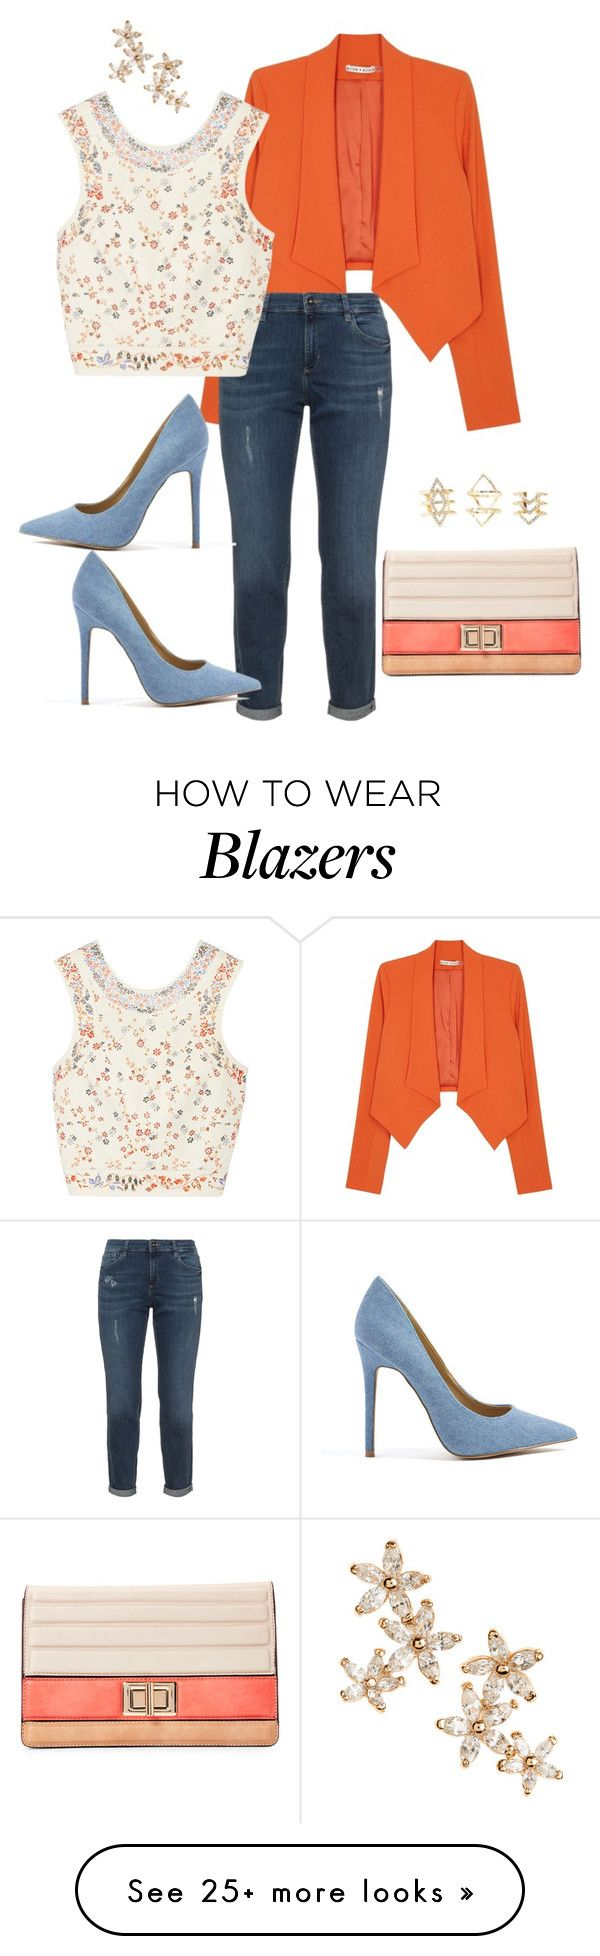 """""""Blazer look"""" by myidealoutfits on Polyvore featuring Alice + Olivia, Etro, Melie Bianco, Bonheur and Charlotte Russe"""